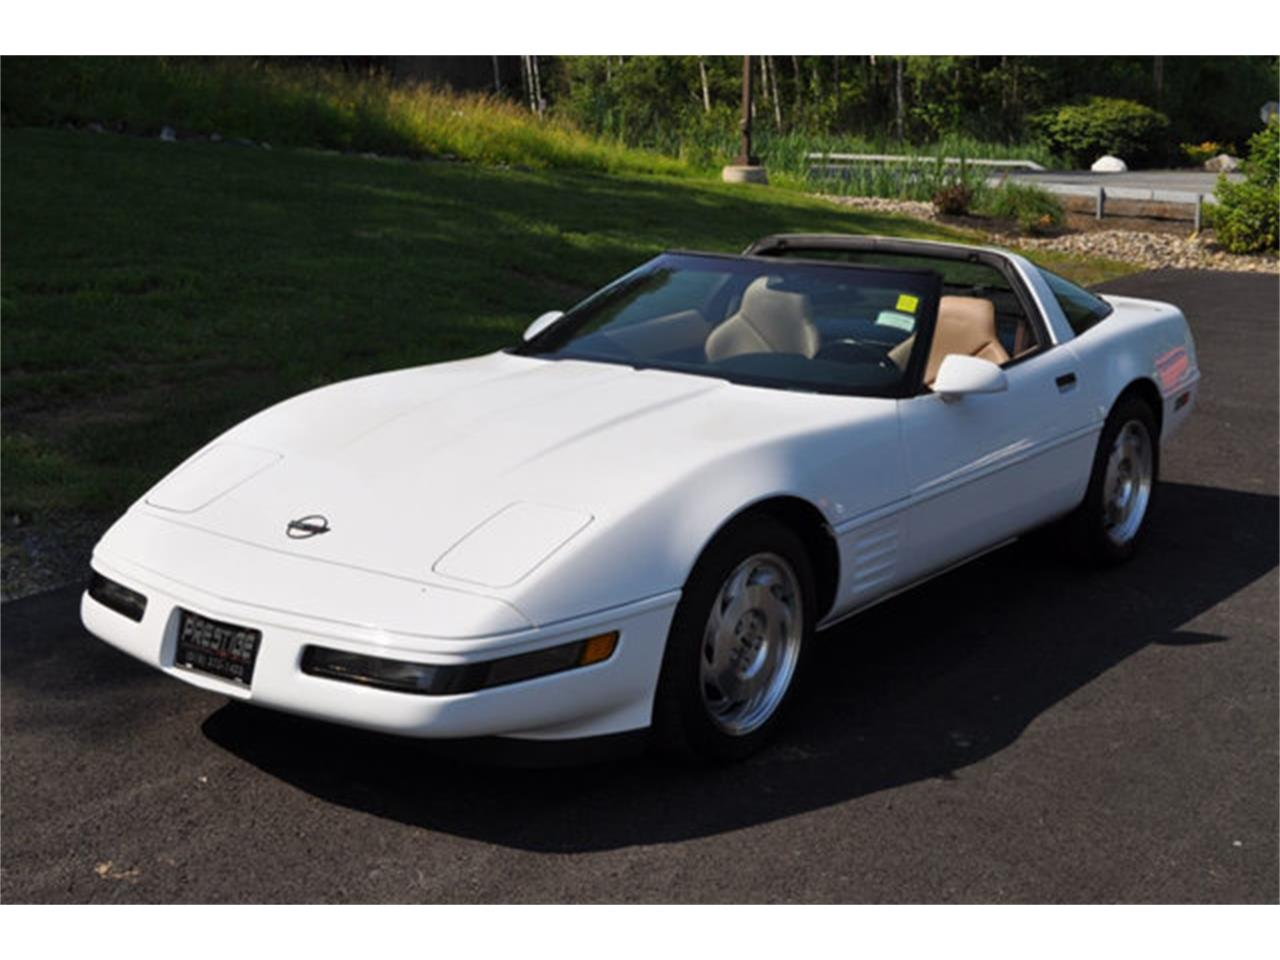 Large Picture of 1994 Corvette located in Clifton Park New York - $12,999.00 Offered by Prestige Motor Car Co. - QETU